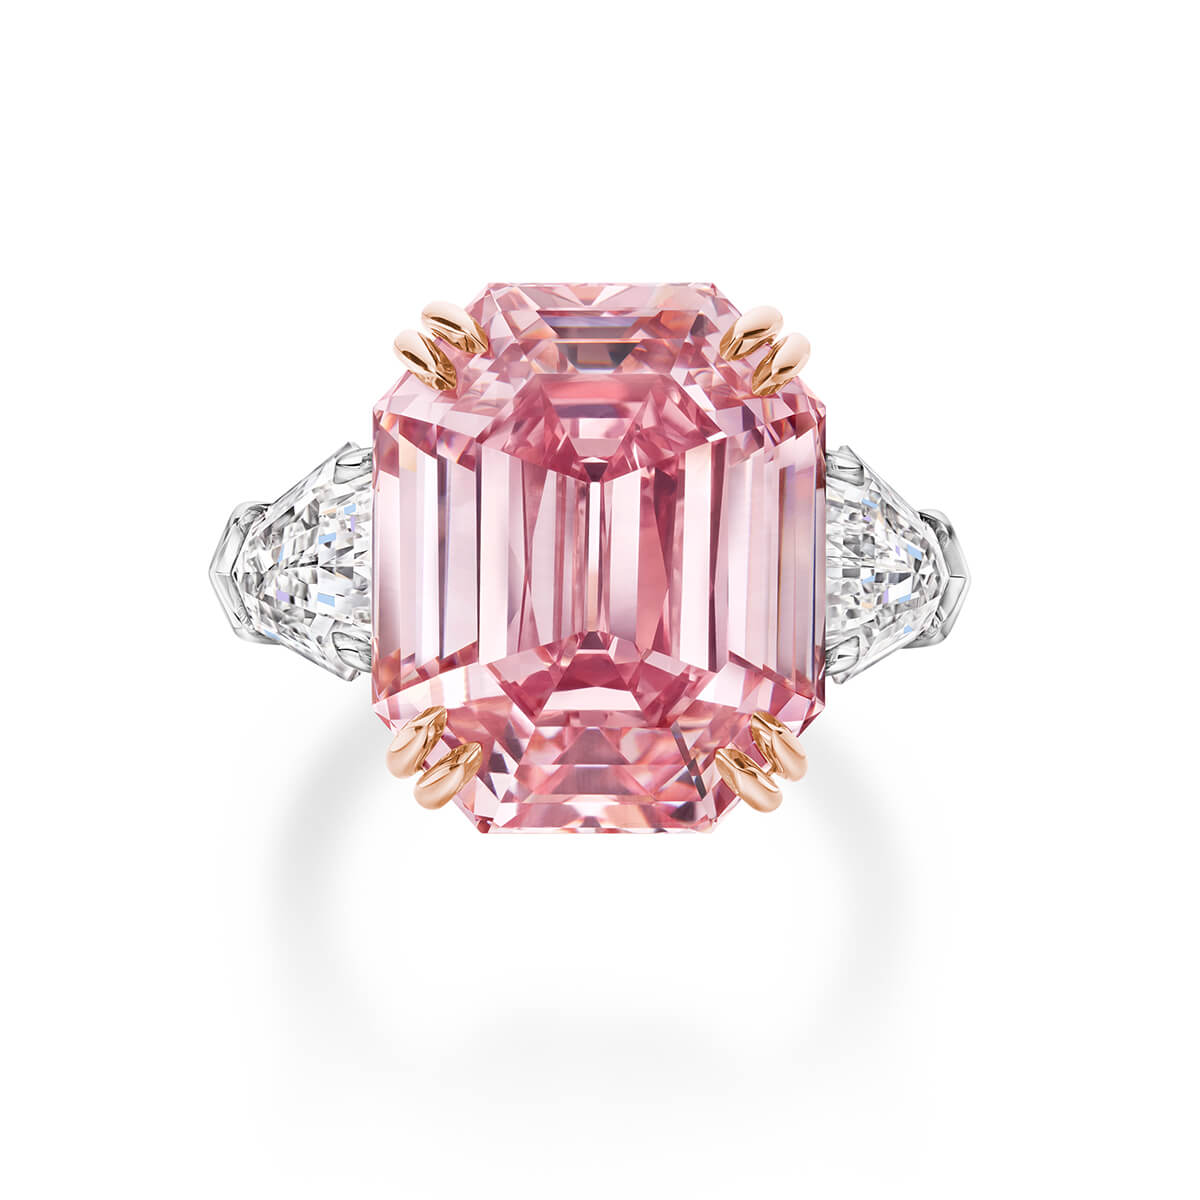 Image of the Winston Pink Legacy a fancy vivd pink diamond weighing 18.96 carats